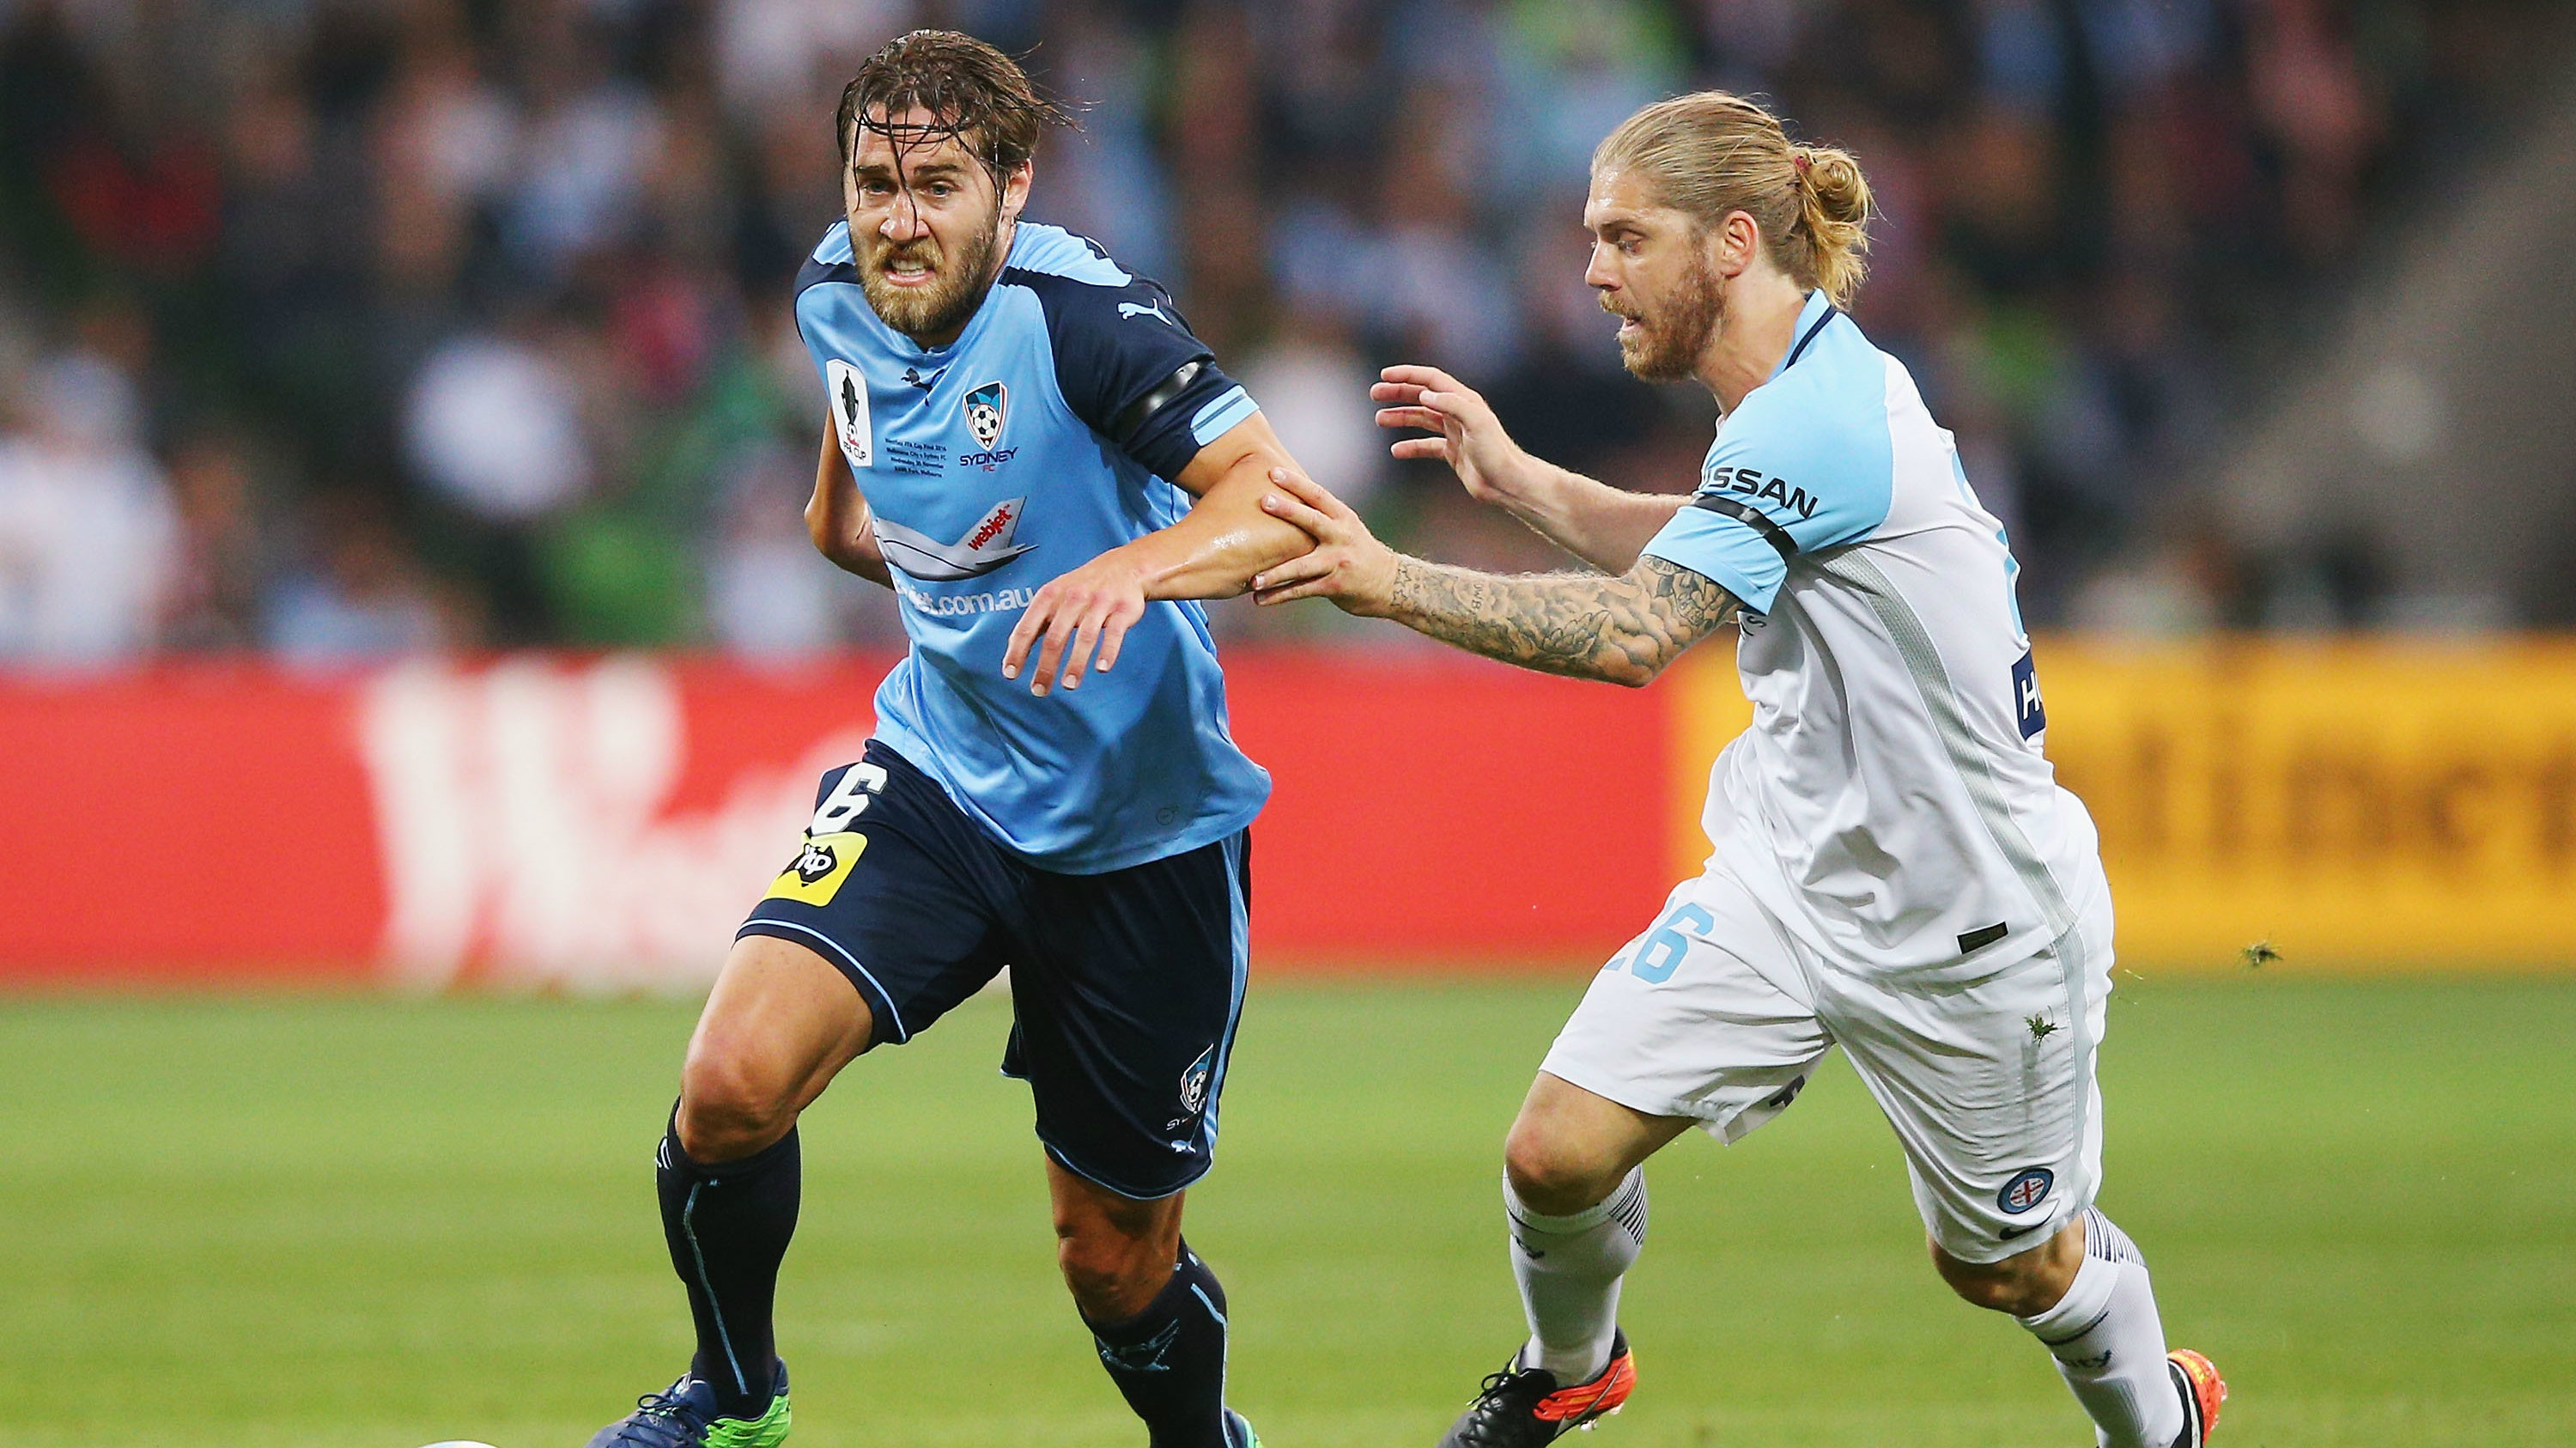 Sydney FC will host Melbourne City in the Quarter Finals.